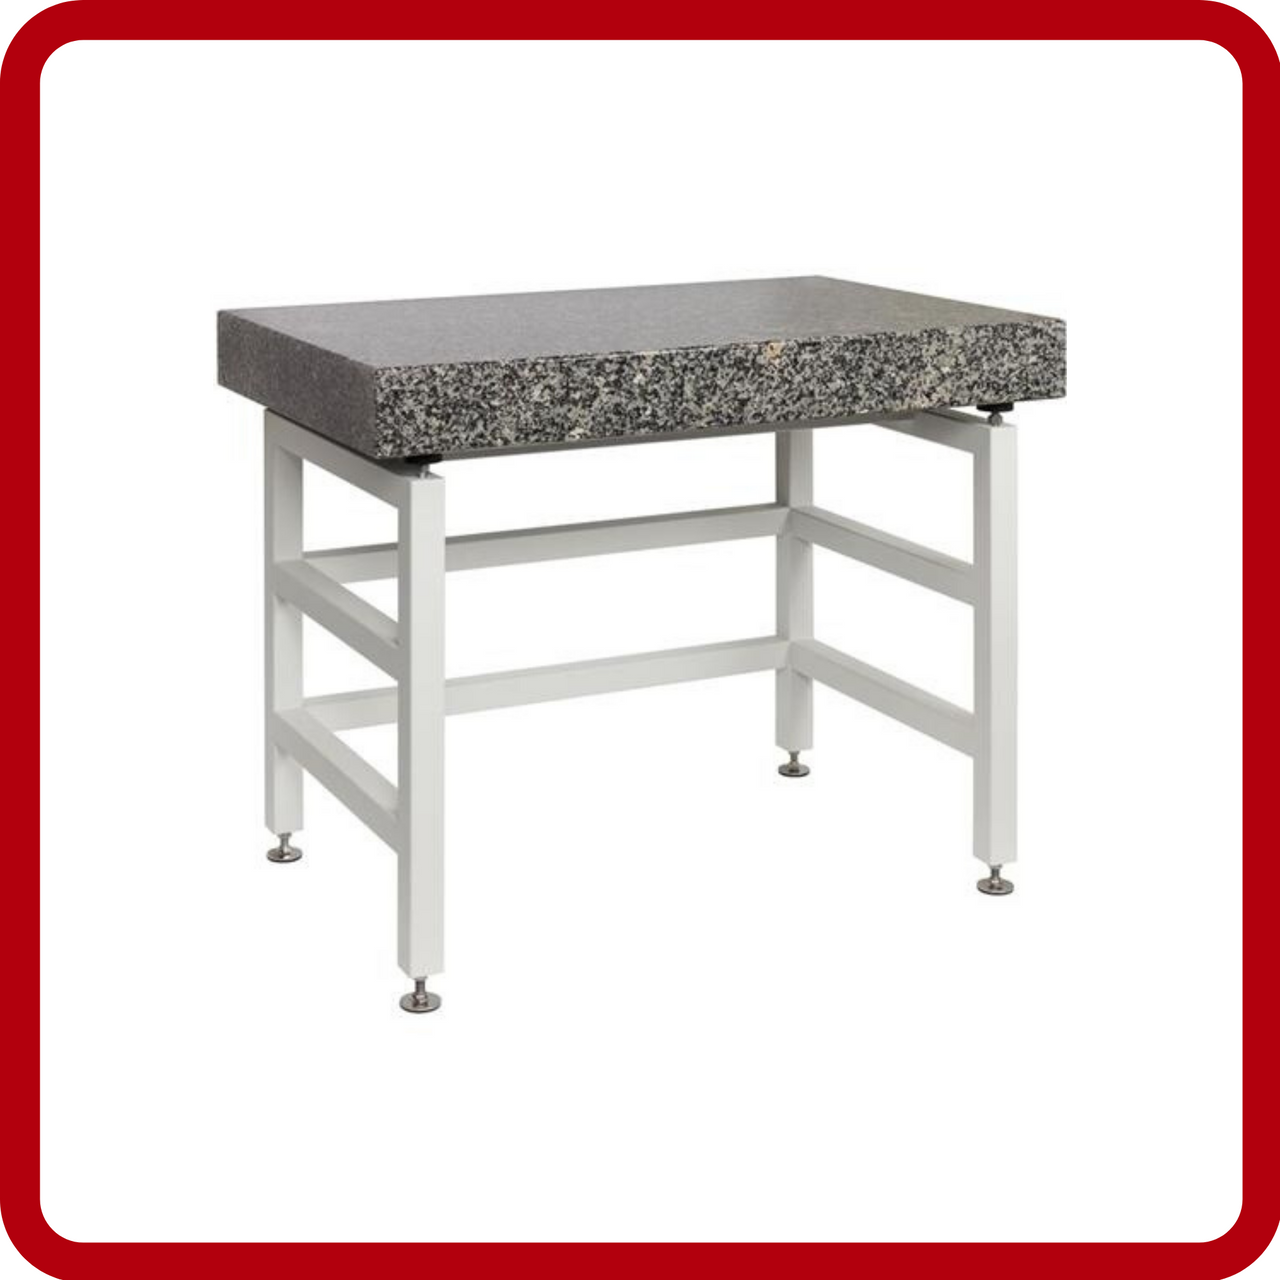 Weighing Tables